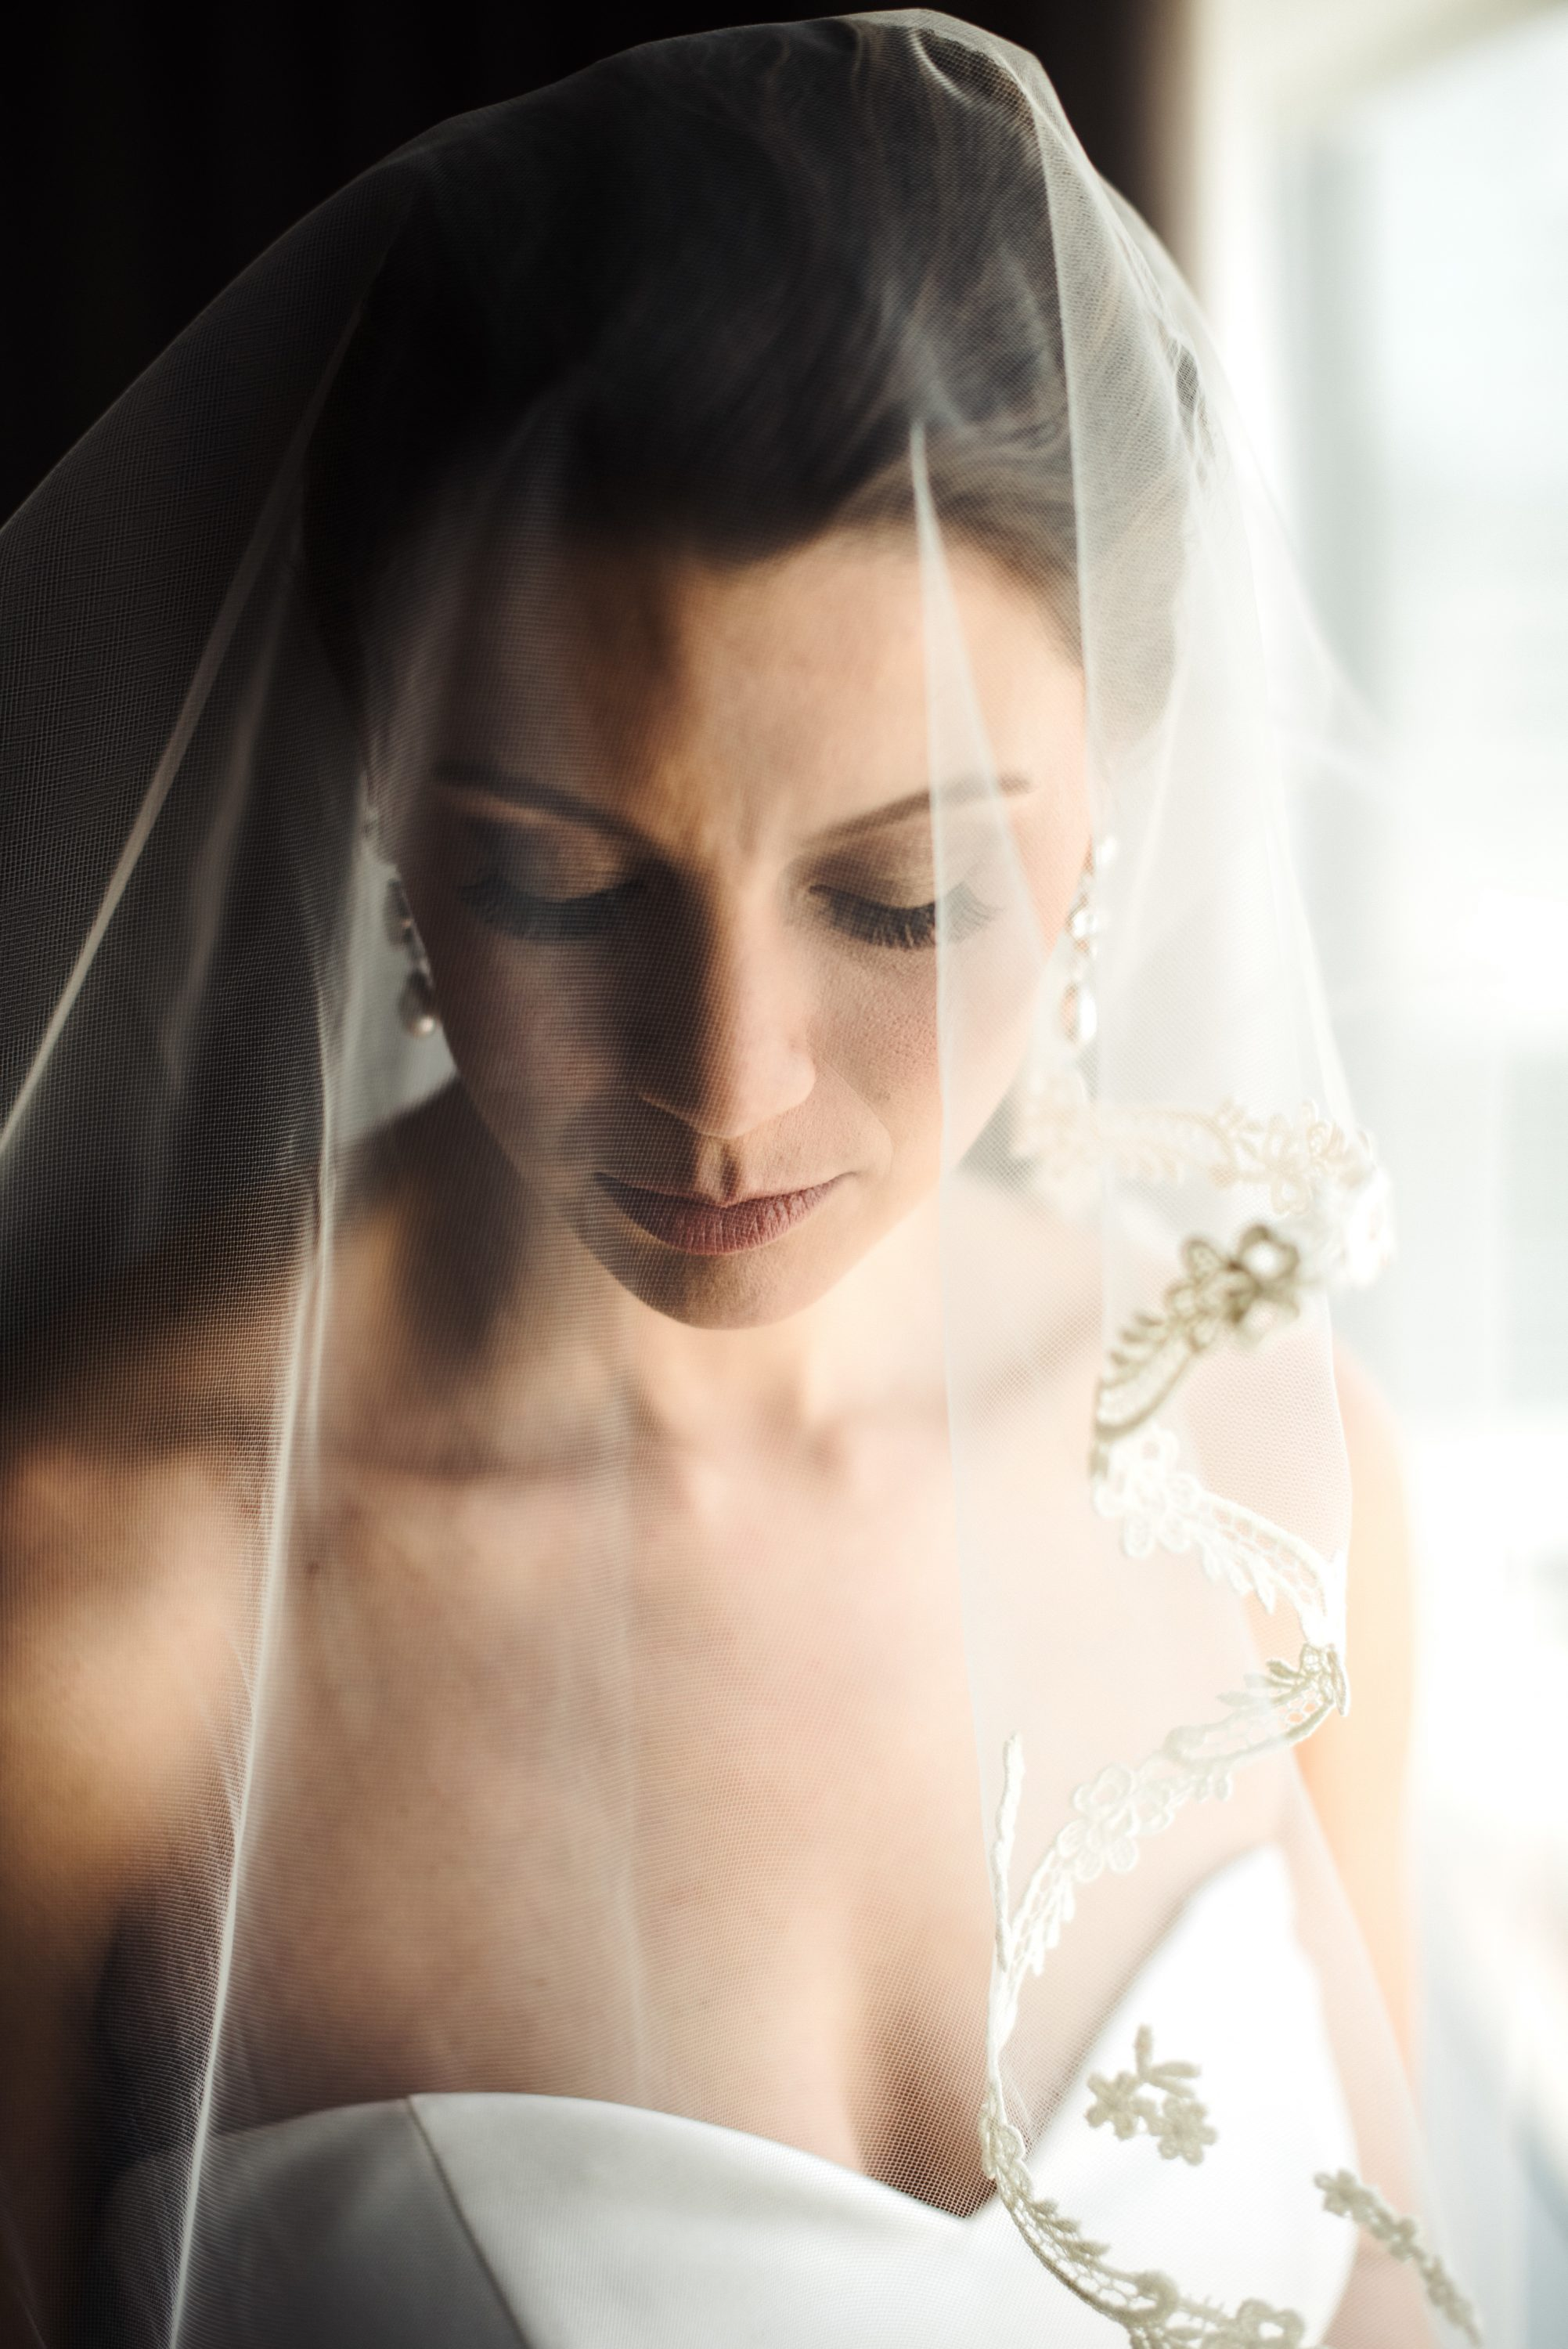 Bridal portrait under ivory veil with lace details showing off make up and hair created by Beauty Asylum